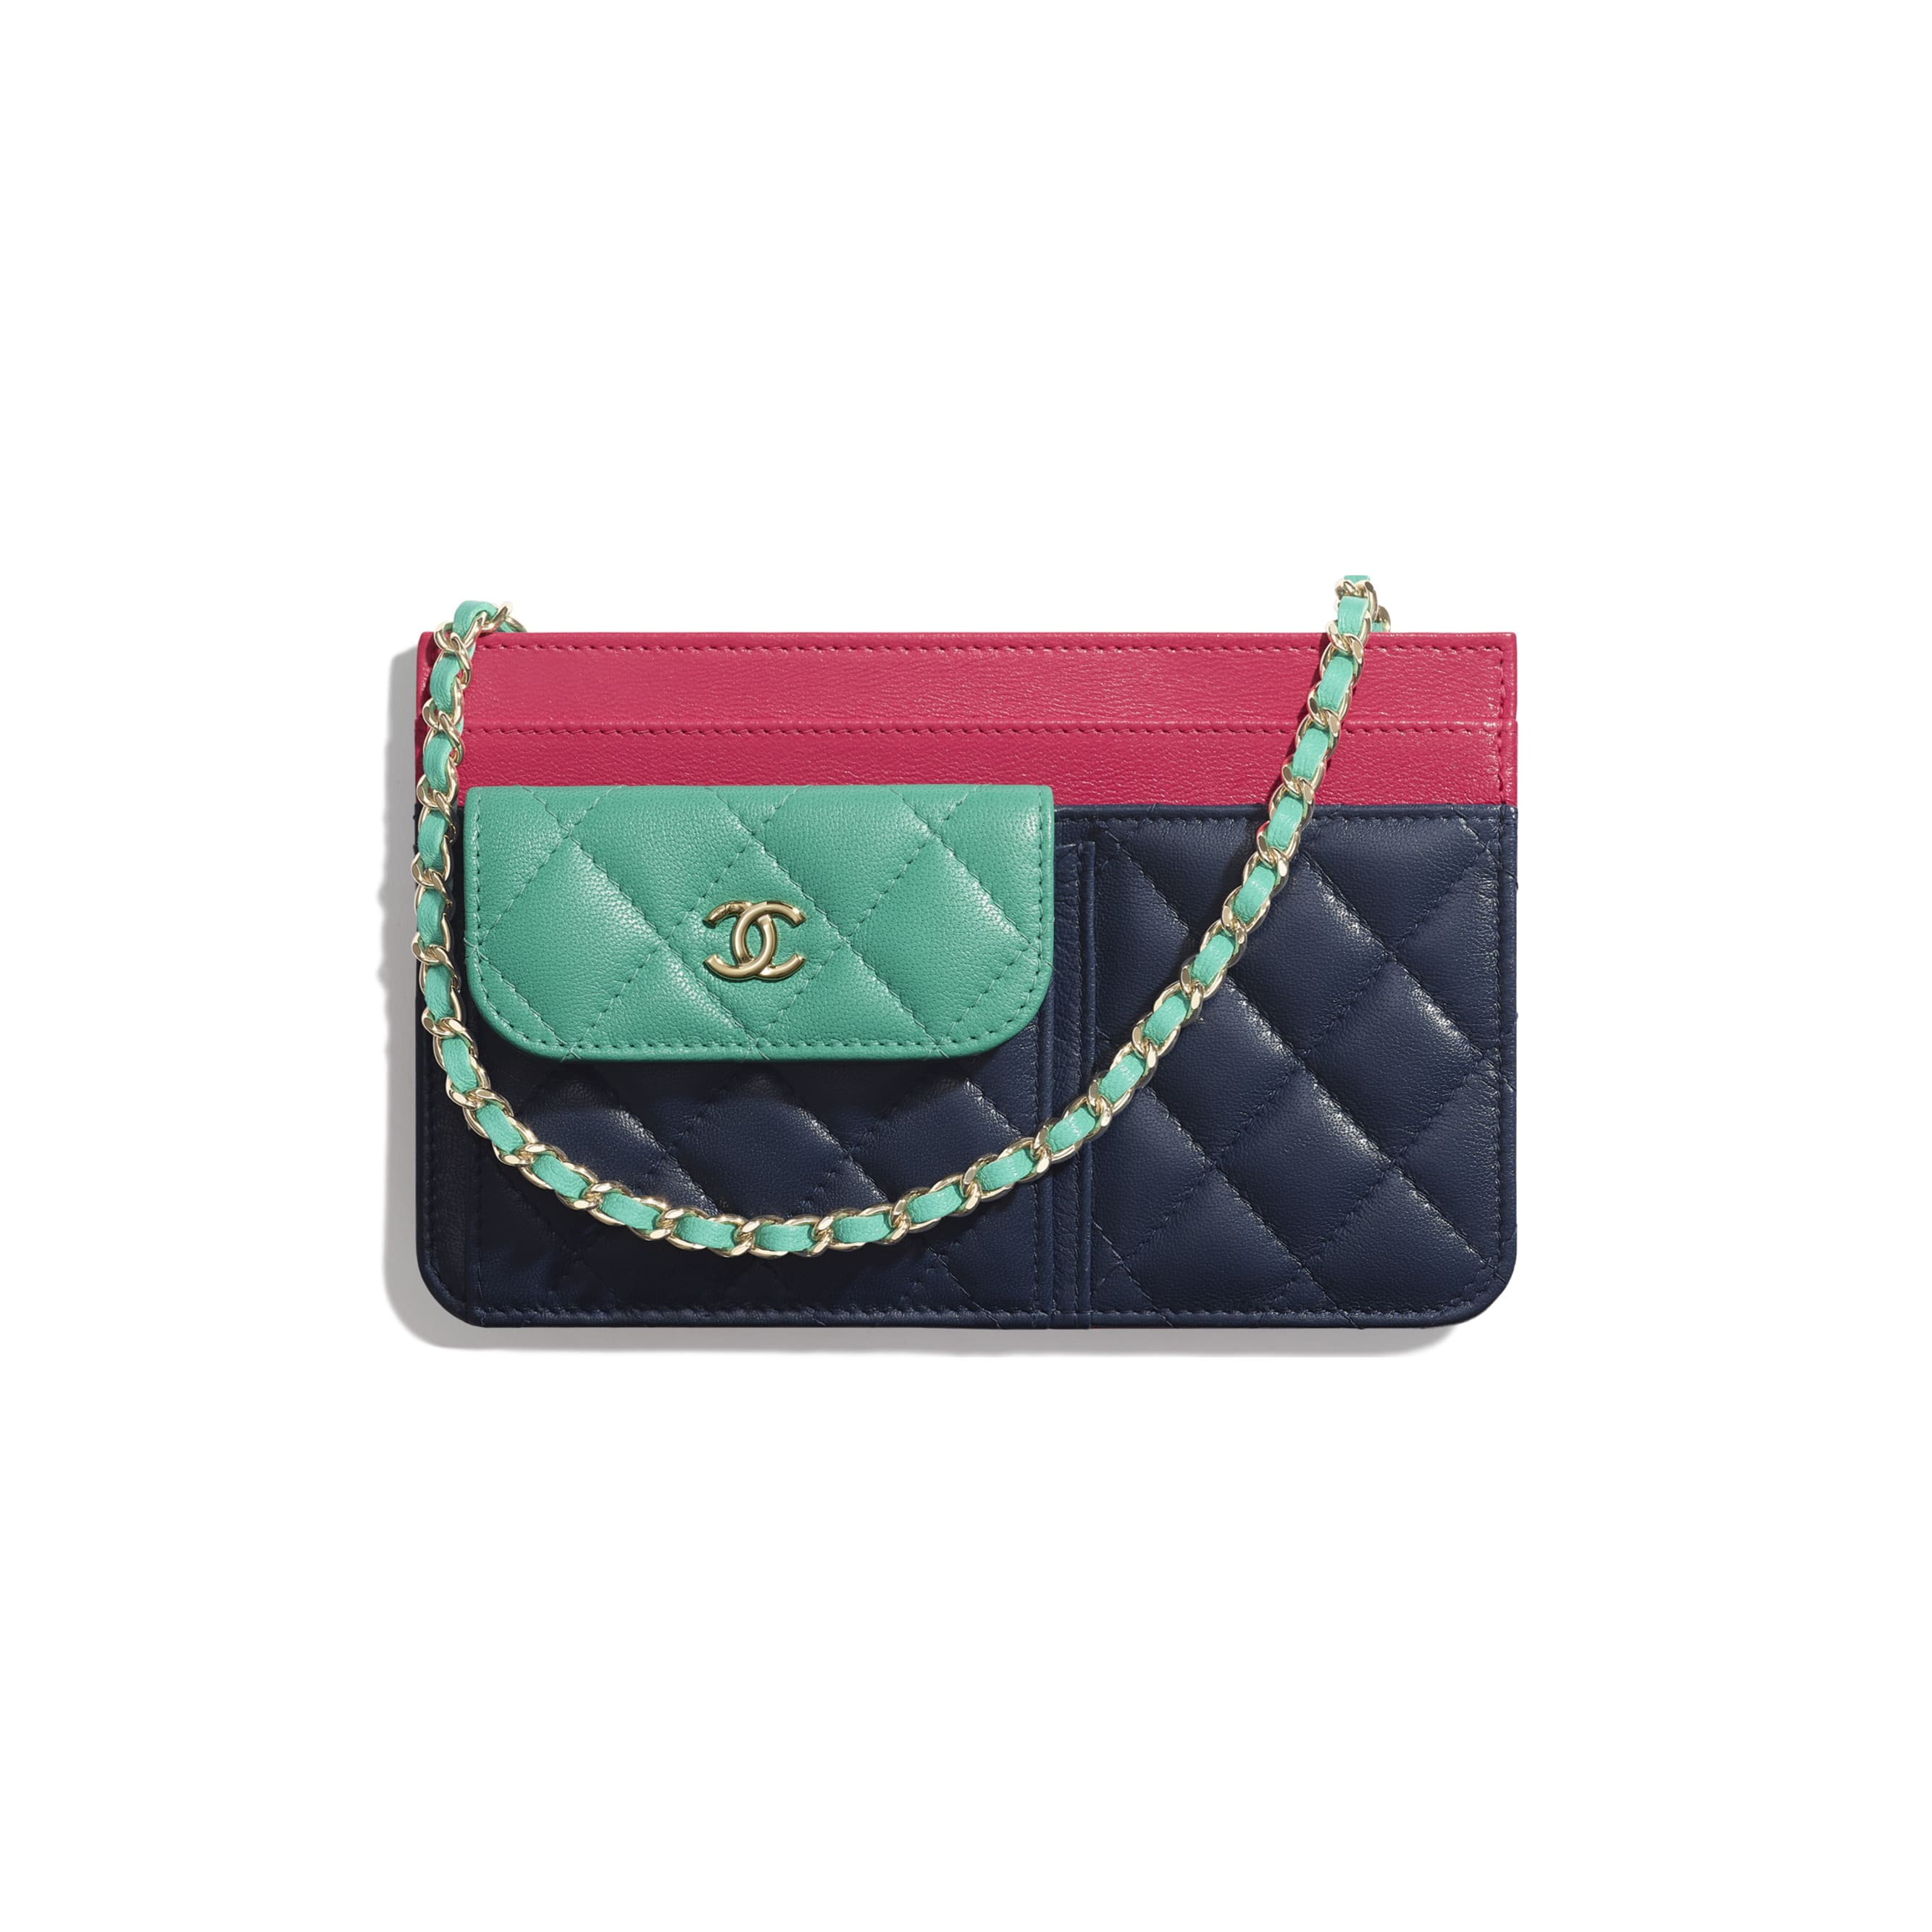 Clutch With Chain - Navy Blue, Green & Dark Pink - Goatskin & Gold-Tone Metal - Default view - see standard sized version